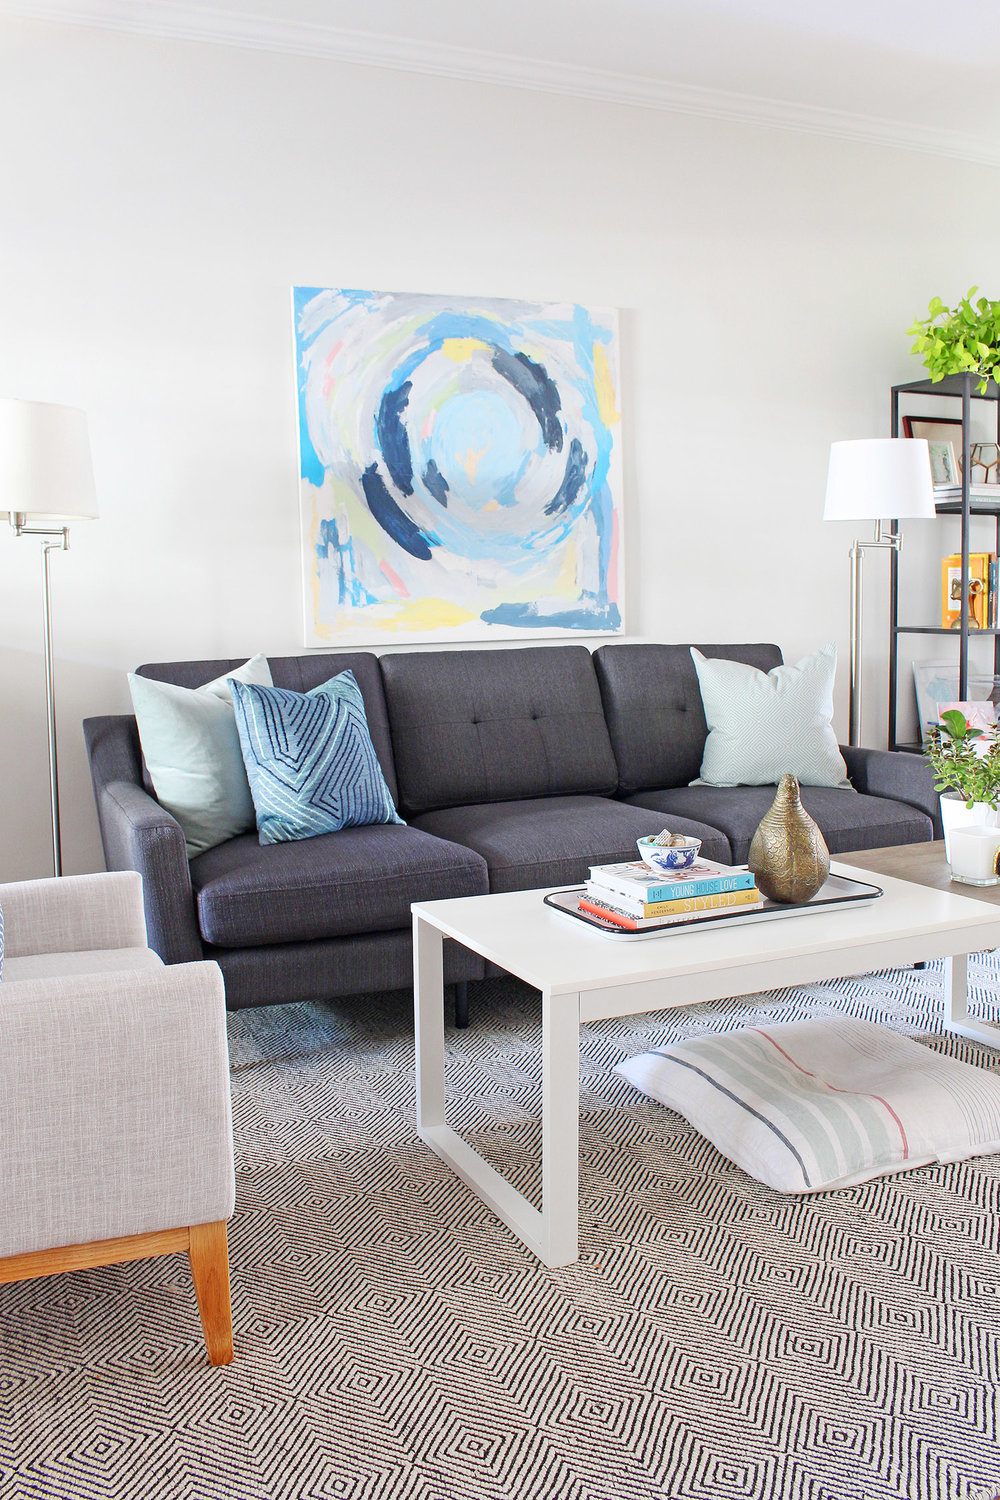 A new gray mid-century modern sofa updates the look of this living room. Head to Burrow.com to purchase your sofa and use code MIXANDMATCH to get $50 off of your purchase.